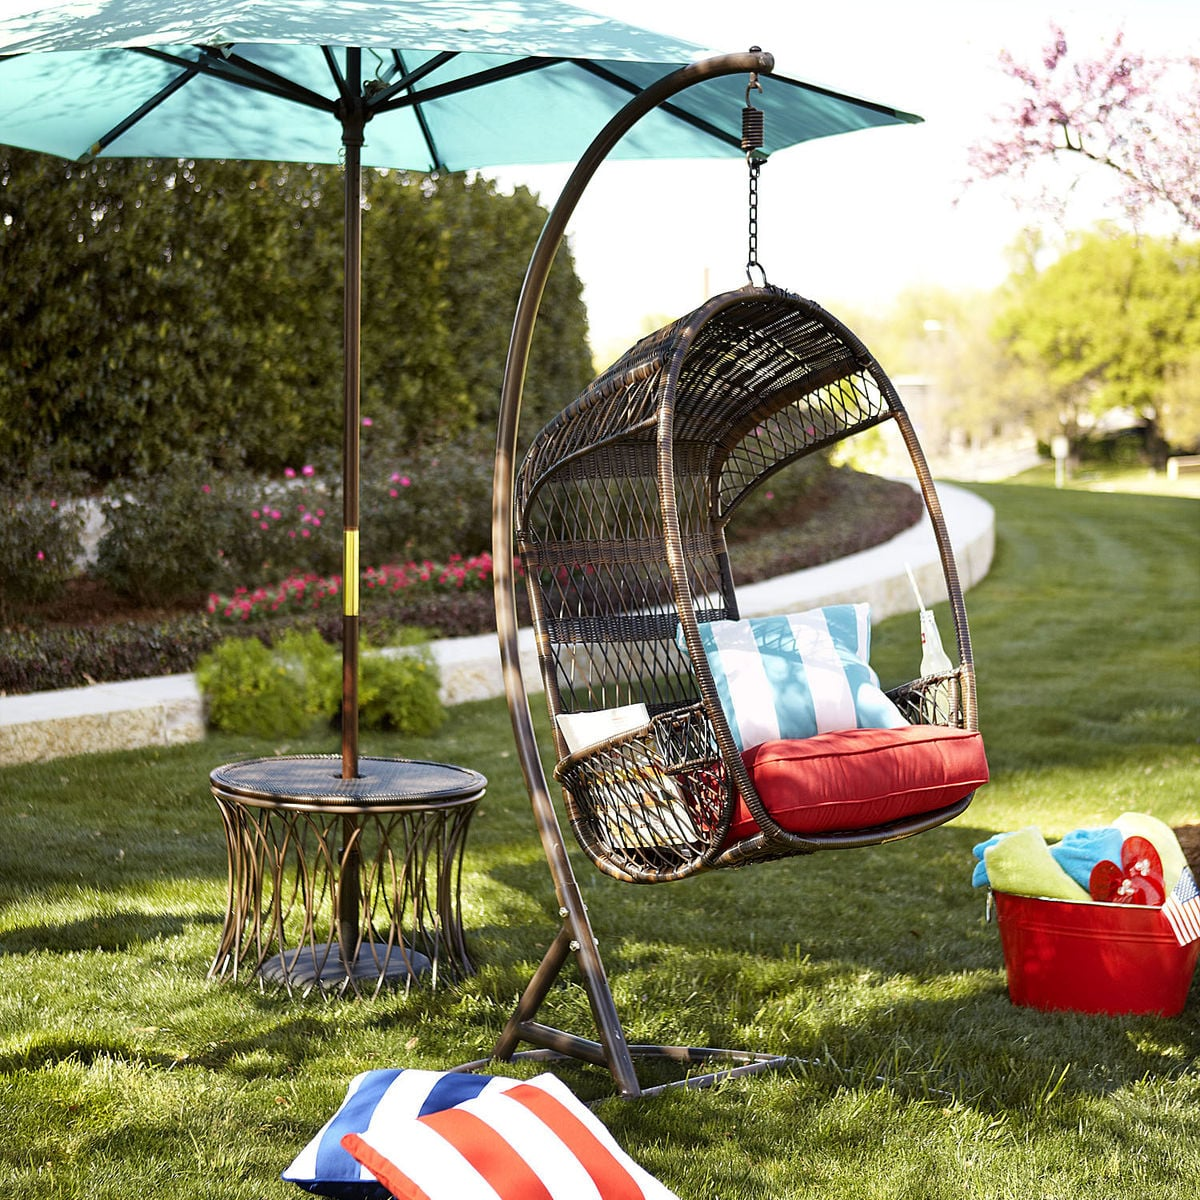 Genial After Receiving Over 100 Complaints, Pier 1 Has Recalled Roughly 276,000  Outdoor Swing Chairs And Stands. A Majority Of The Reports Claimed That The  Stand ...